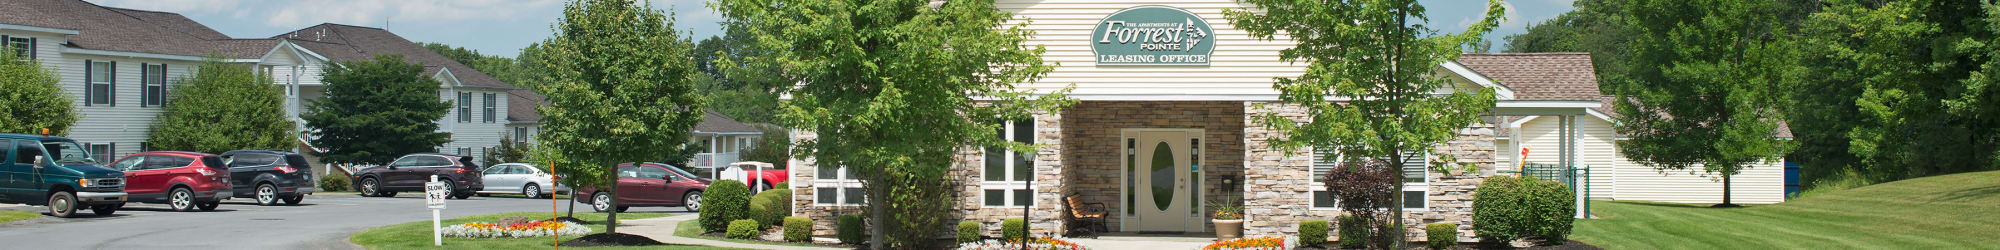 Want to live at Forrest Pointe Apartments and Townhomes? Apply online!